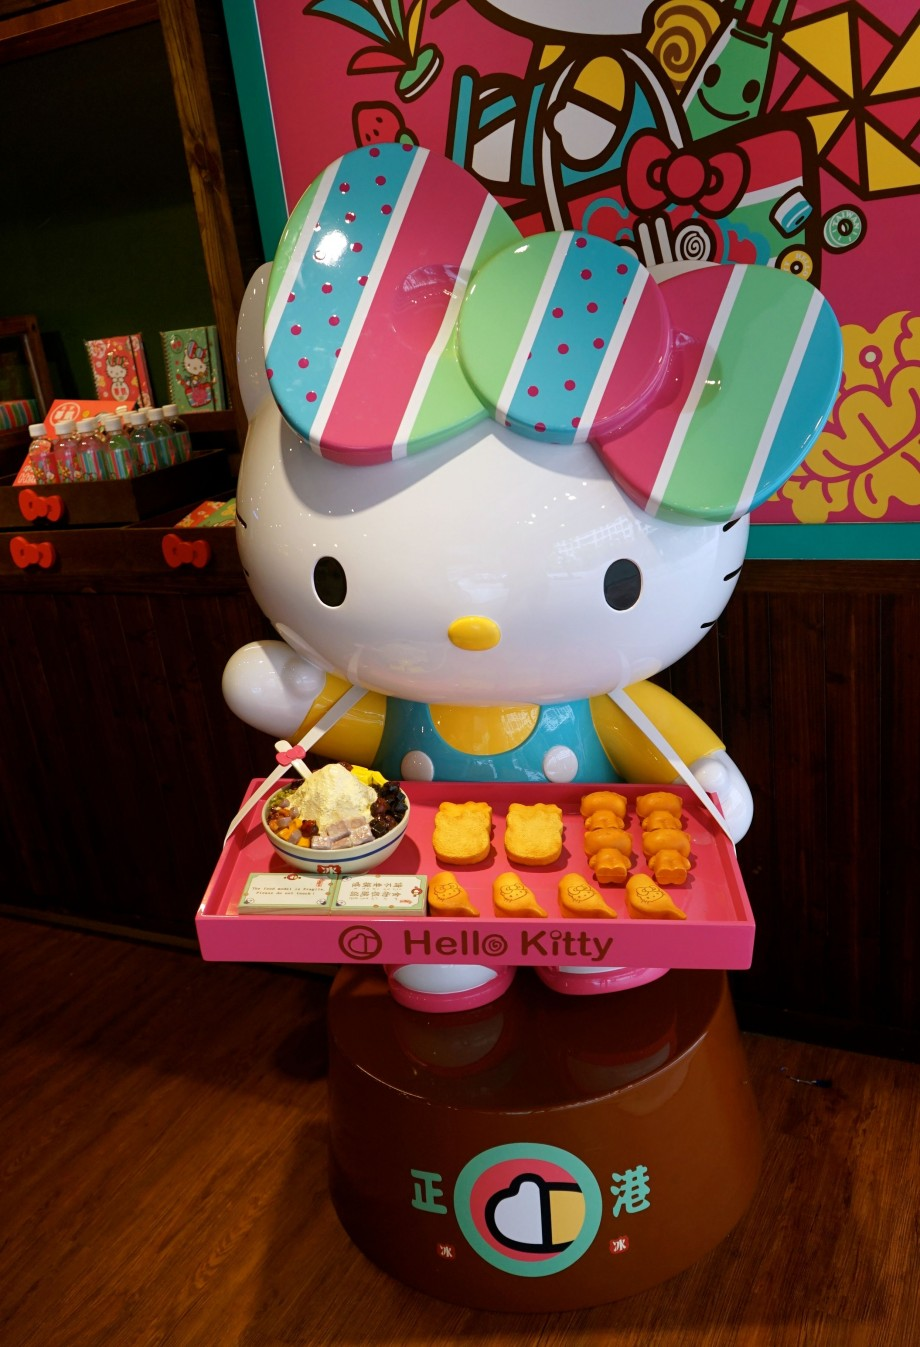 Traditional snacks sold at Hello Kitty Themed Souvenir Store Taipei - AspirantSG